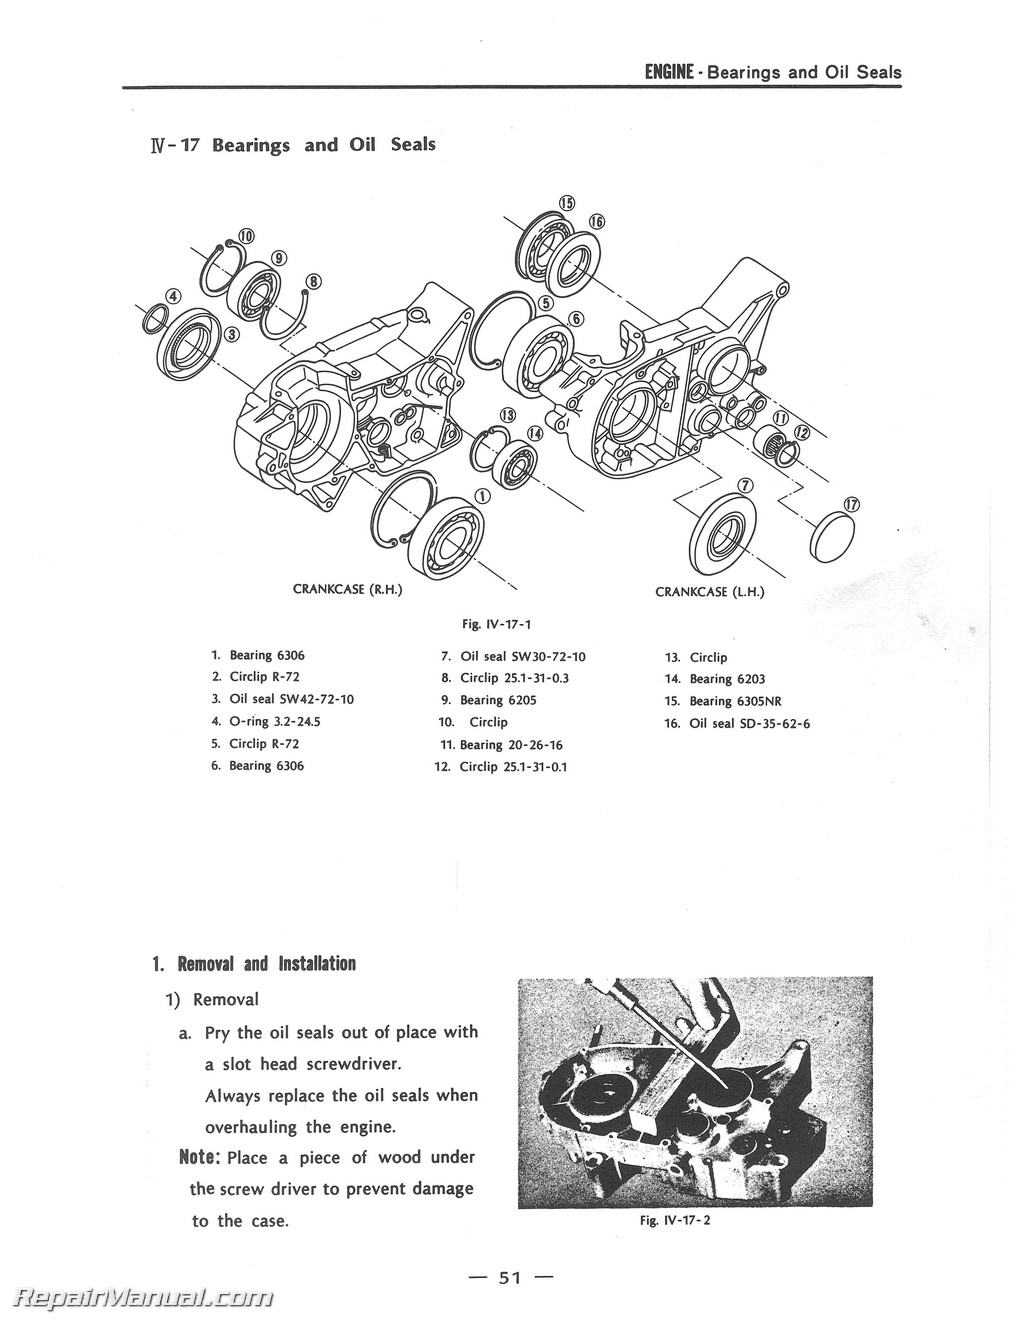 1970-1971-Yamaha-RT1-360cc-DT2-RT2-Service-Manual_Page_3 Yamaha Dt Motorcycle Wiring Diagrams on yamaha wiring harness diagram, yamaha motorcycle ignition system, yamaha 650 wiring diagram, yamaha moto 4 wiring diagram, yamaha grizzly 600 wiring diagram, yamaha wiring schematics, yamaha motorcycle paint codes, yamaha banshee wiring-diagram, yamaha schematic diagram, yamaha motorcycle wheels and tires, yamaha dt 100 wiring diagram, yamaha generator wiring diagram, yamaha xs1100 wiring-diagram, yamaha virago wiring-diagram, yamaha rt100 schematic, yamaha seca xj650 wiring-diagram, yamaha dt 175 wiring-diagram, yamaha xs650 wiring-diagram, yamaha rd 350 wiring diagram, yamaha motorcycle drawings,